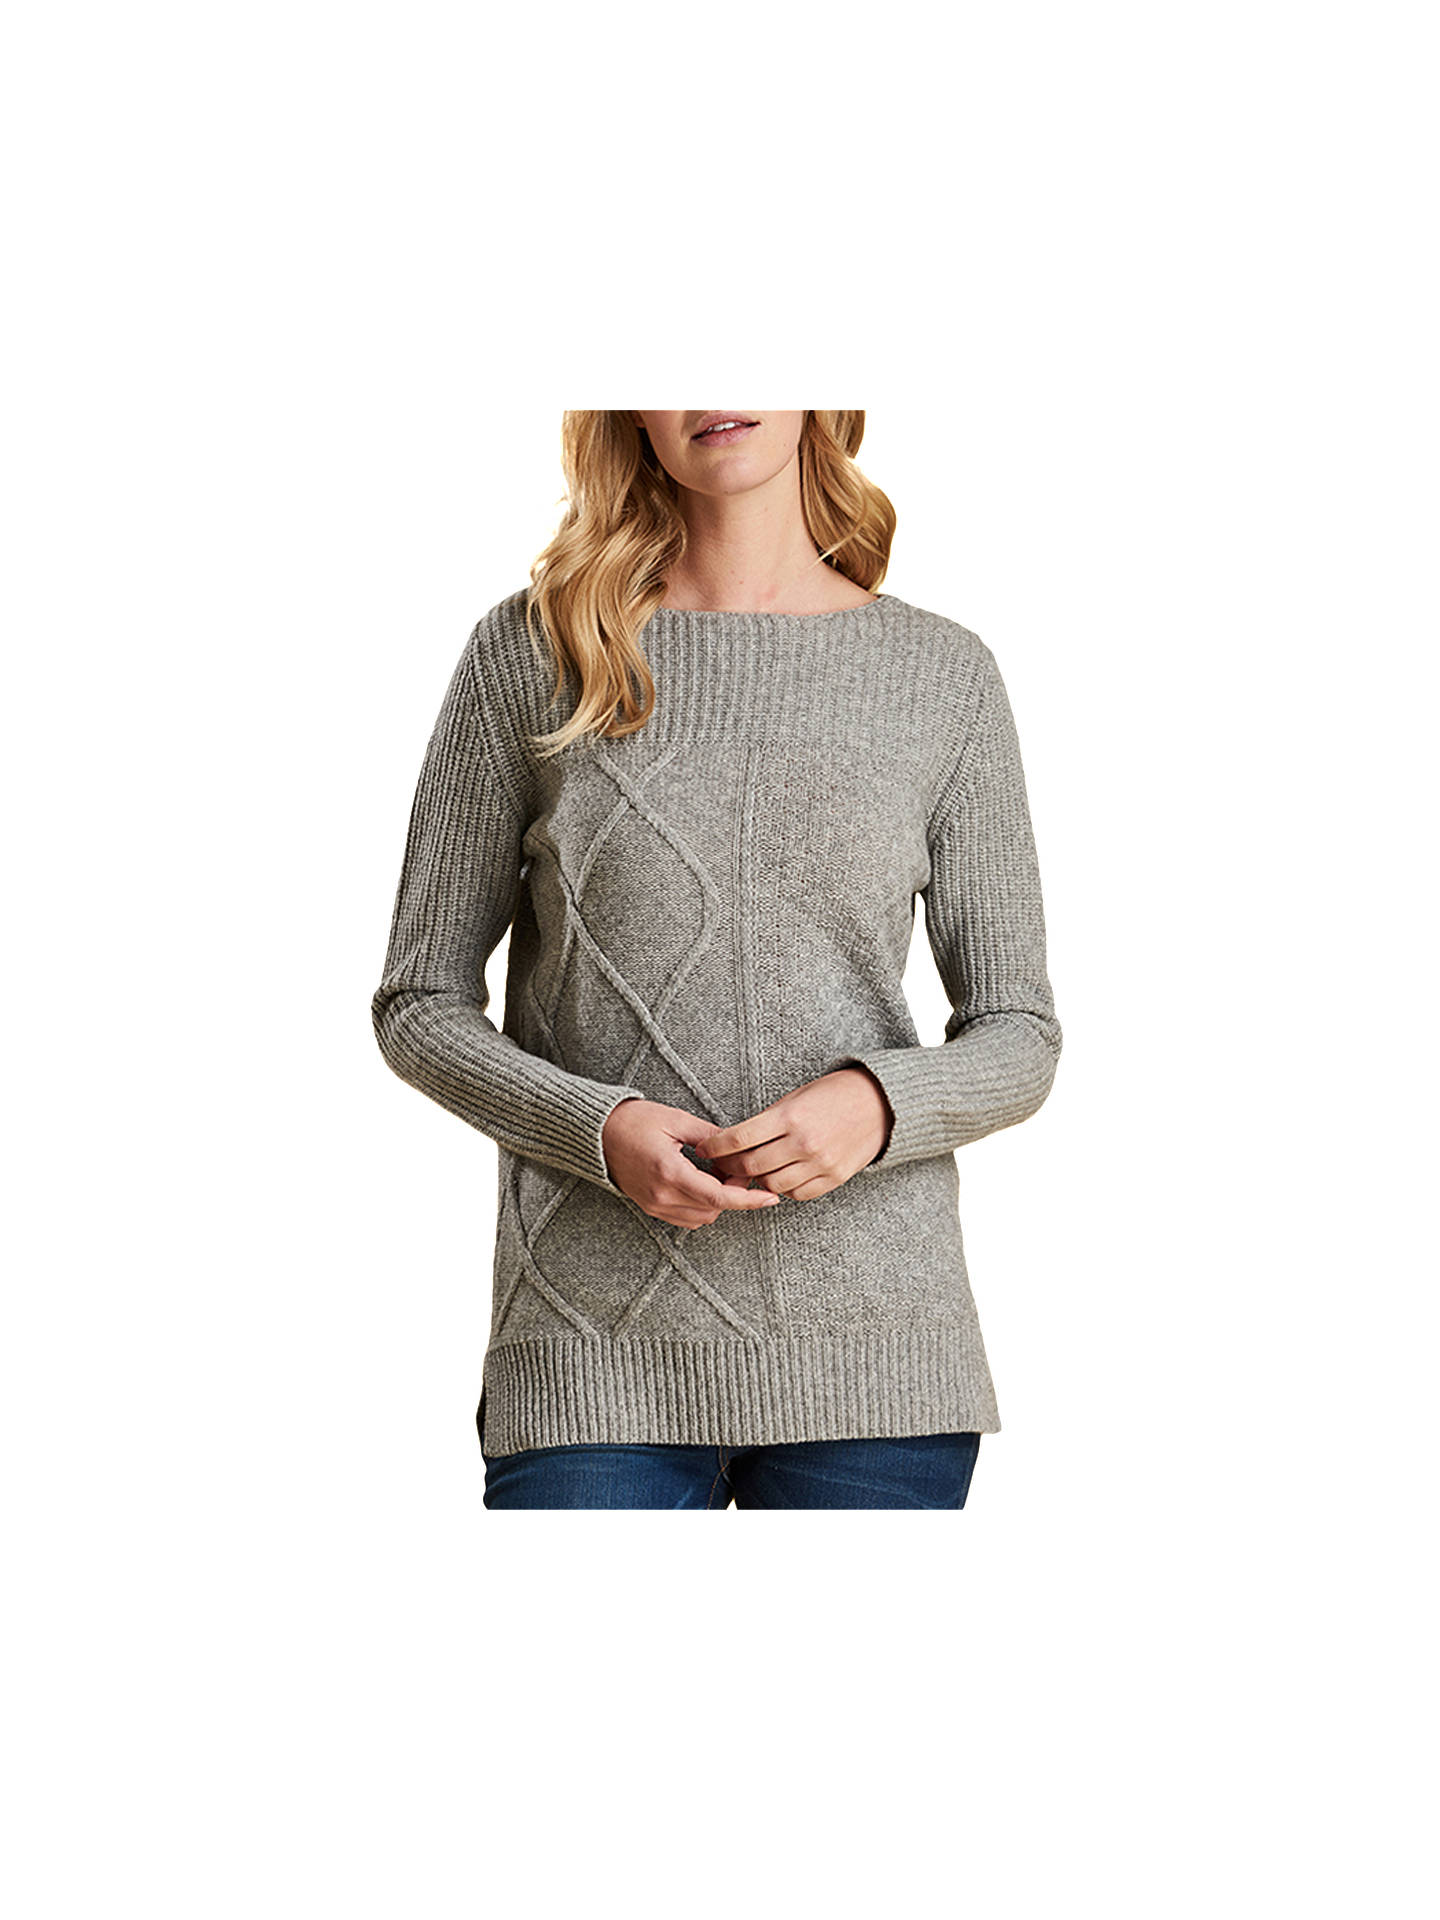 BuyBarbour Carlton Jumper, Light Grey Marl, 8 Online at johnlewis.com